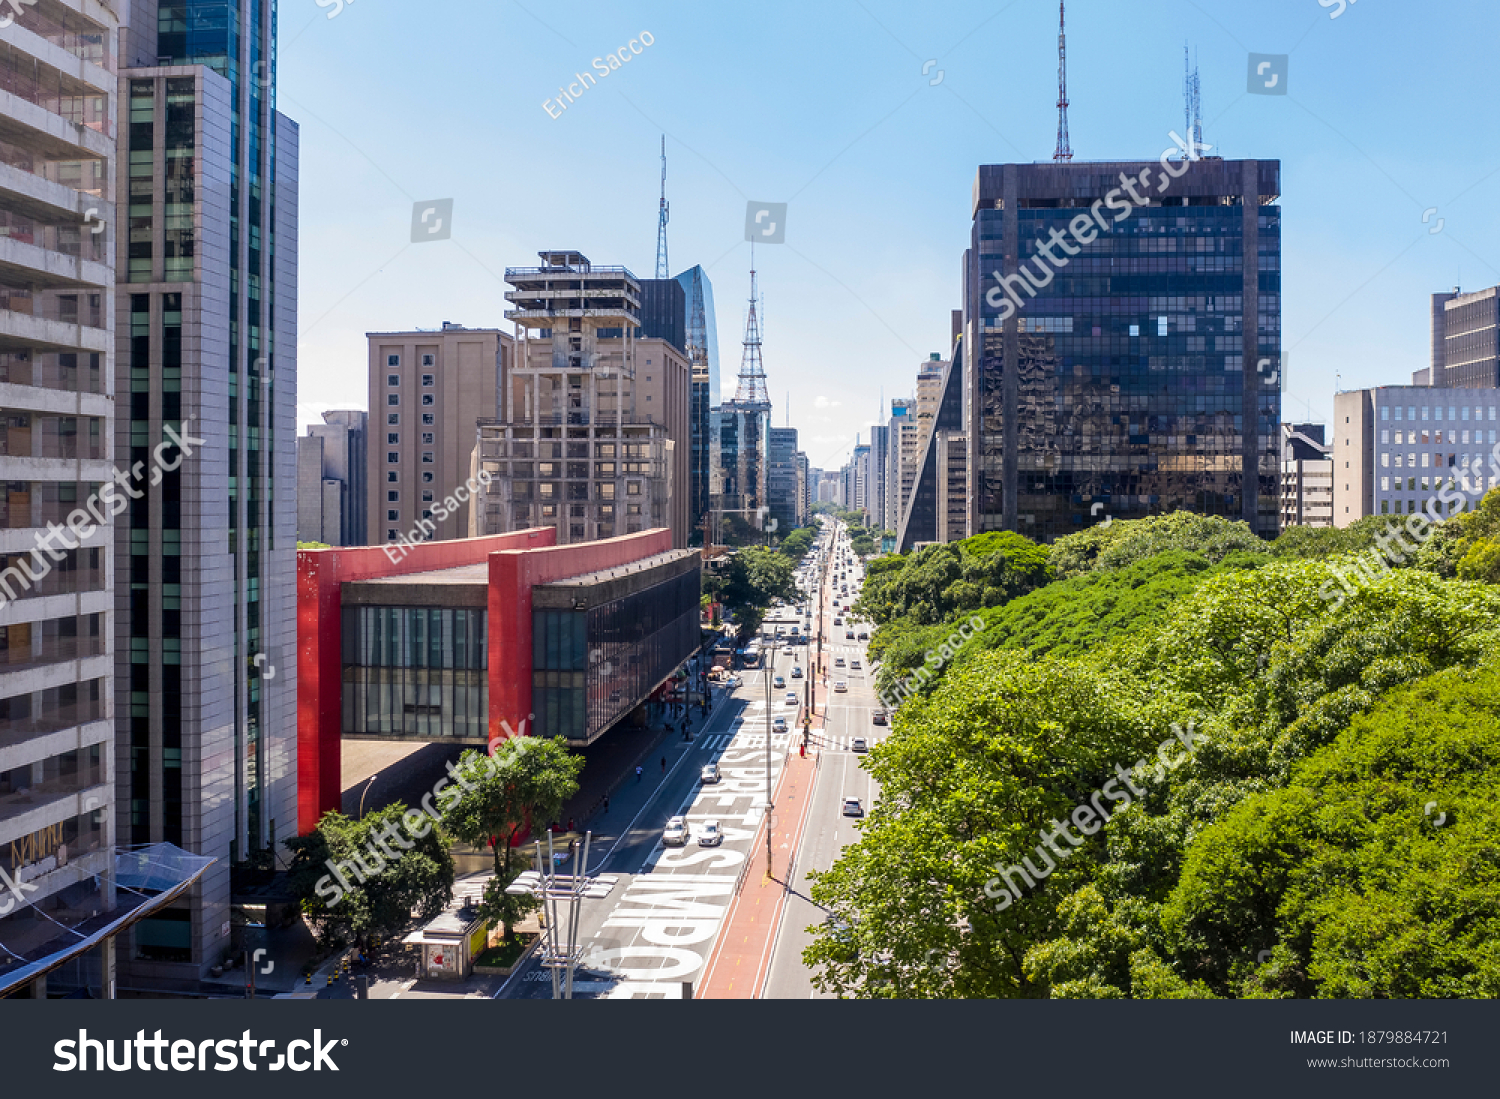 Paulista avenue, financial center of Sao Paulo and Brazil and MASP seen from above with its commercial buildings and intense movement of people and cars #1879884721